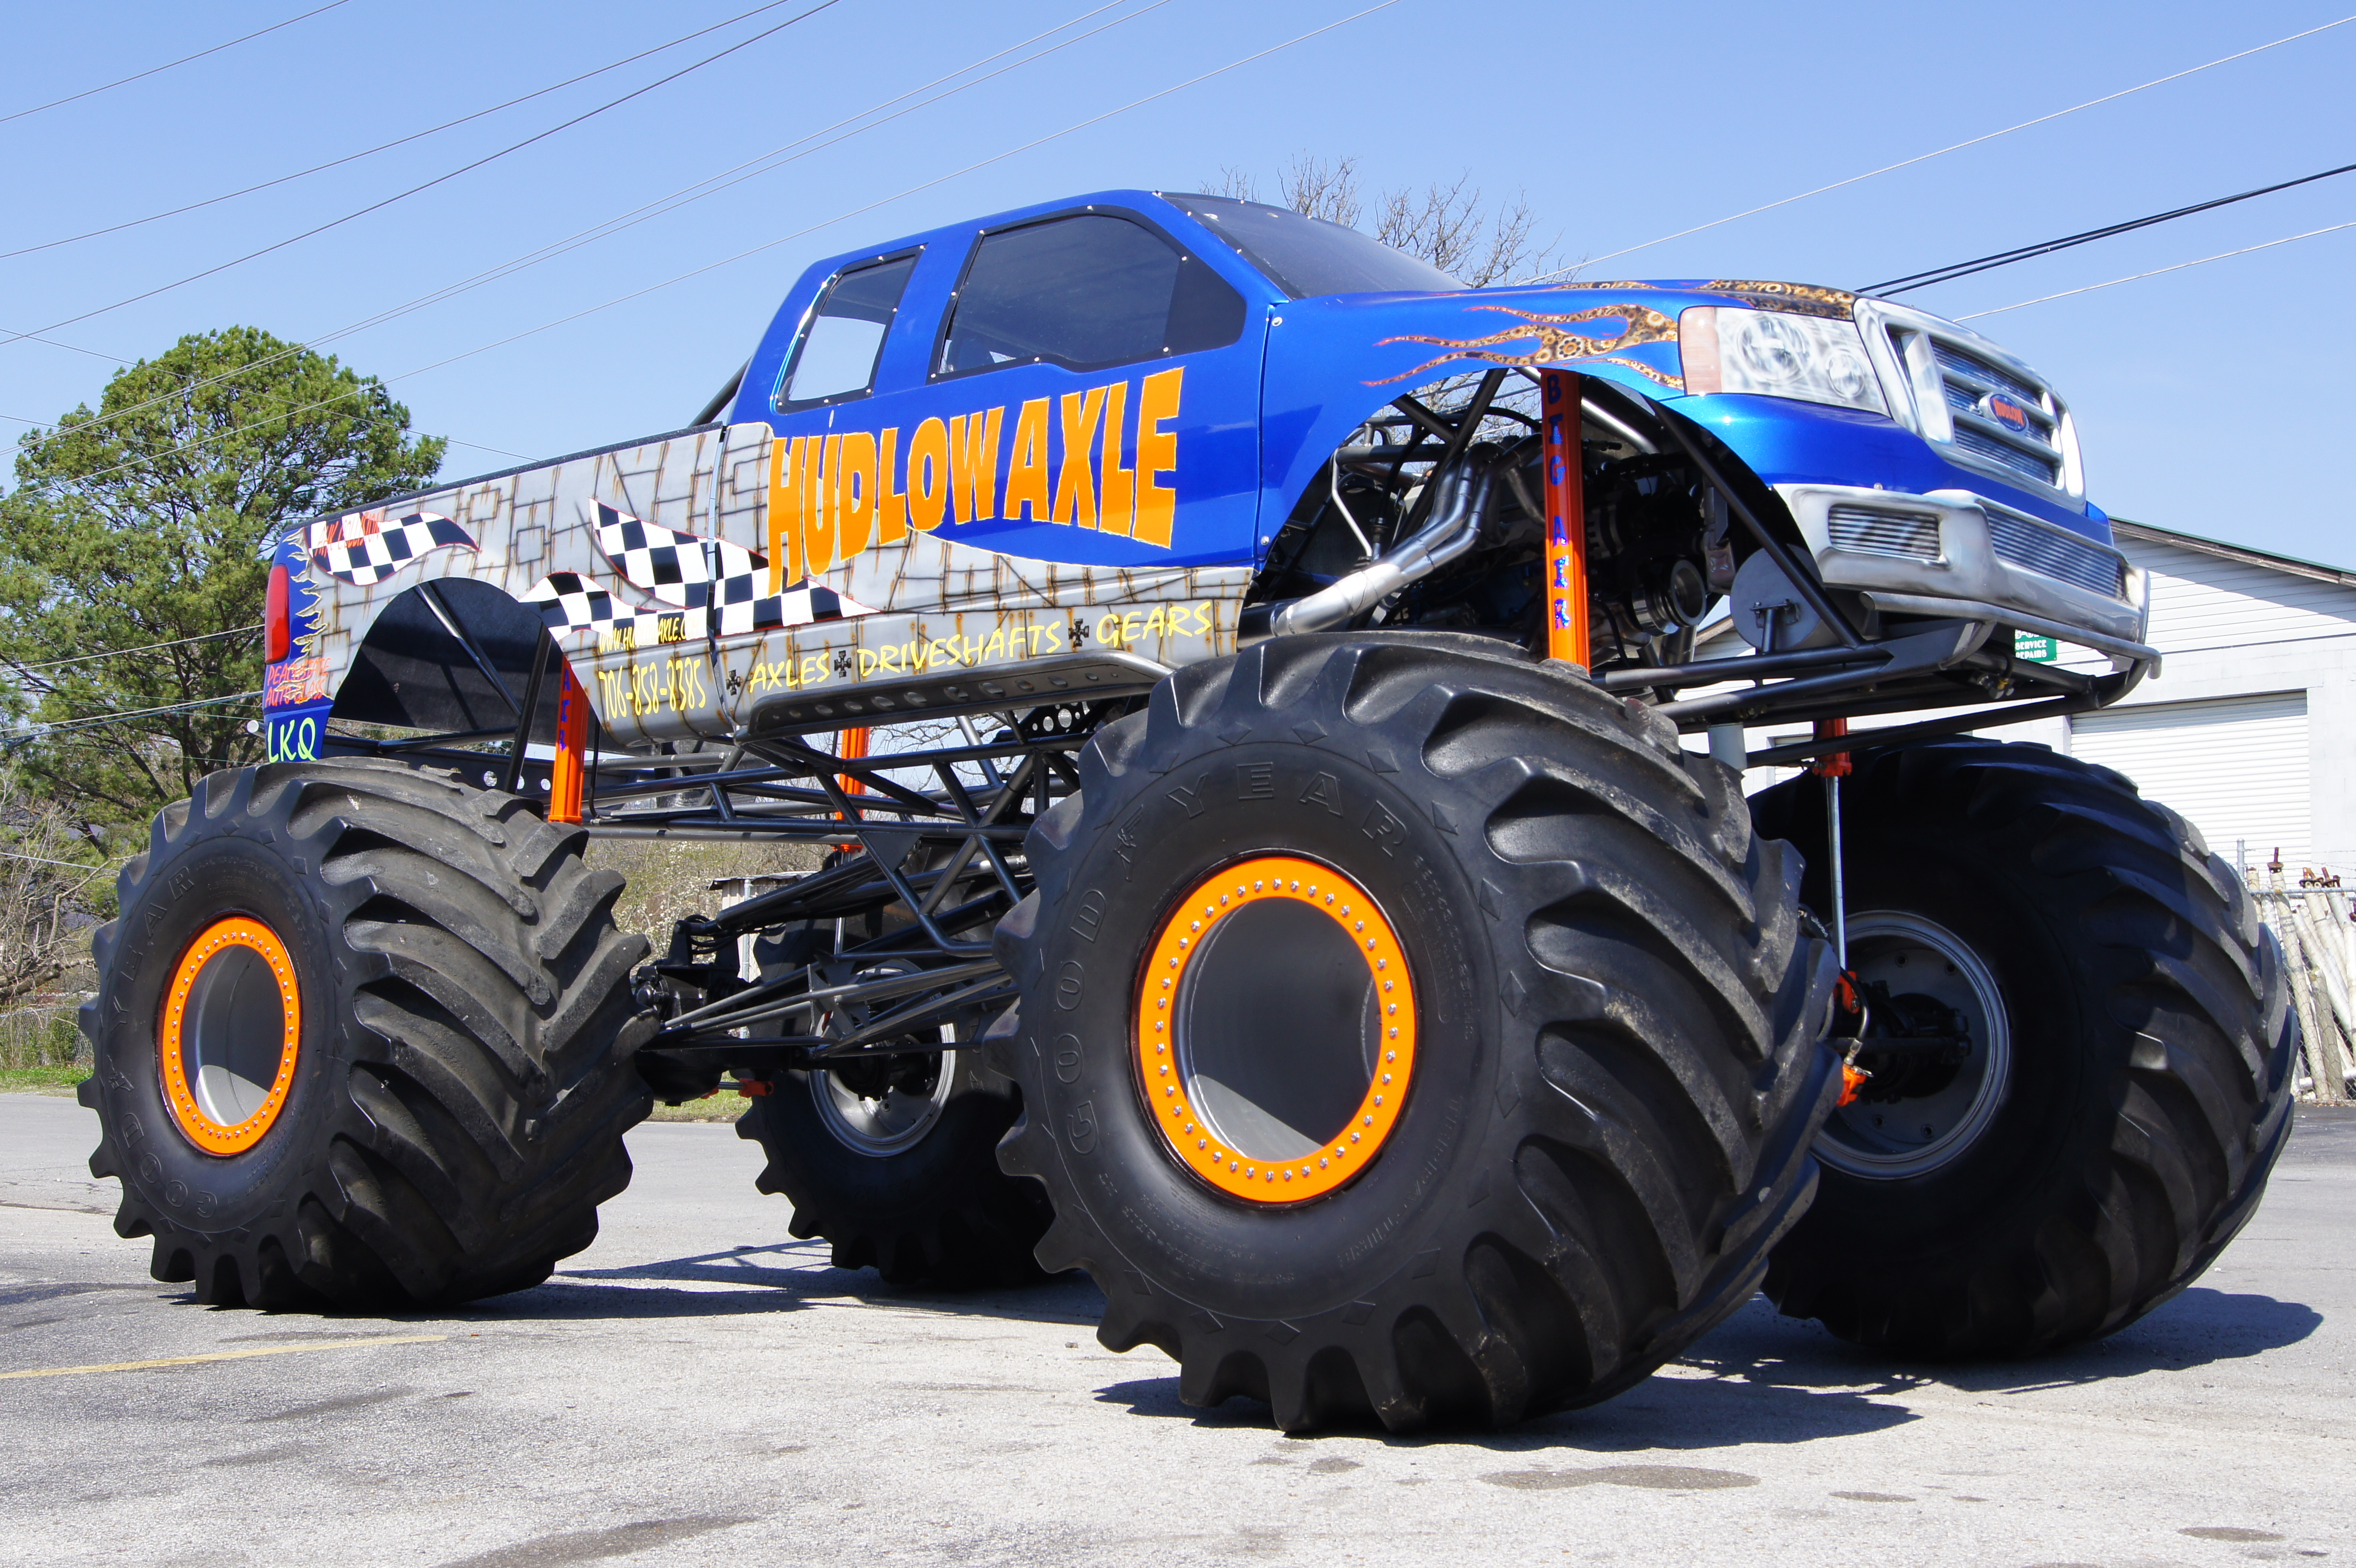 Monster Truck Madness - Events - Visit Stockton